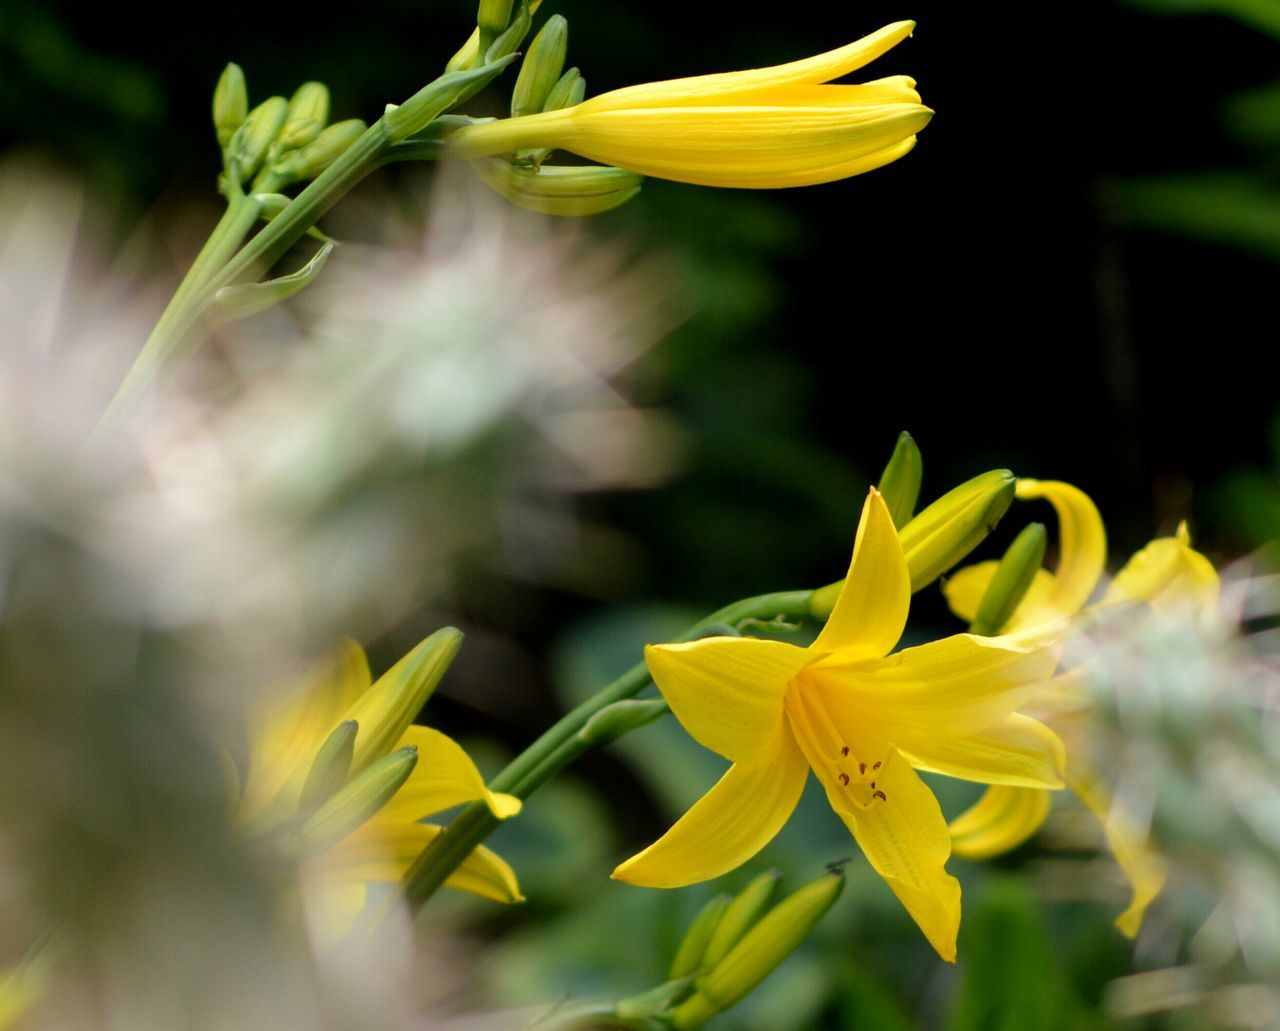 flower, yellow, petal, freshness, fragility, flower head, growth, close-up, beauty in nature, plant, focus on foreground, nature, blooming, stem, pollen, in bloom, blossom, selective focus, leaf, outdoors